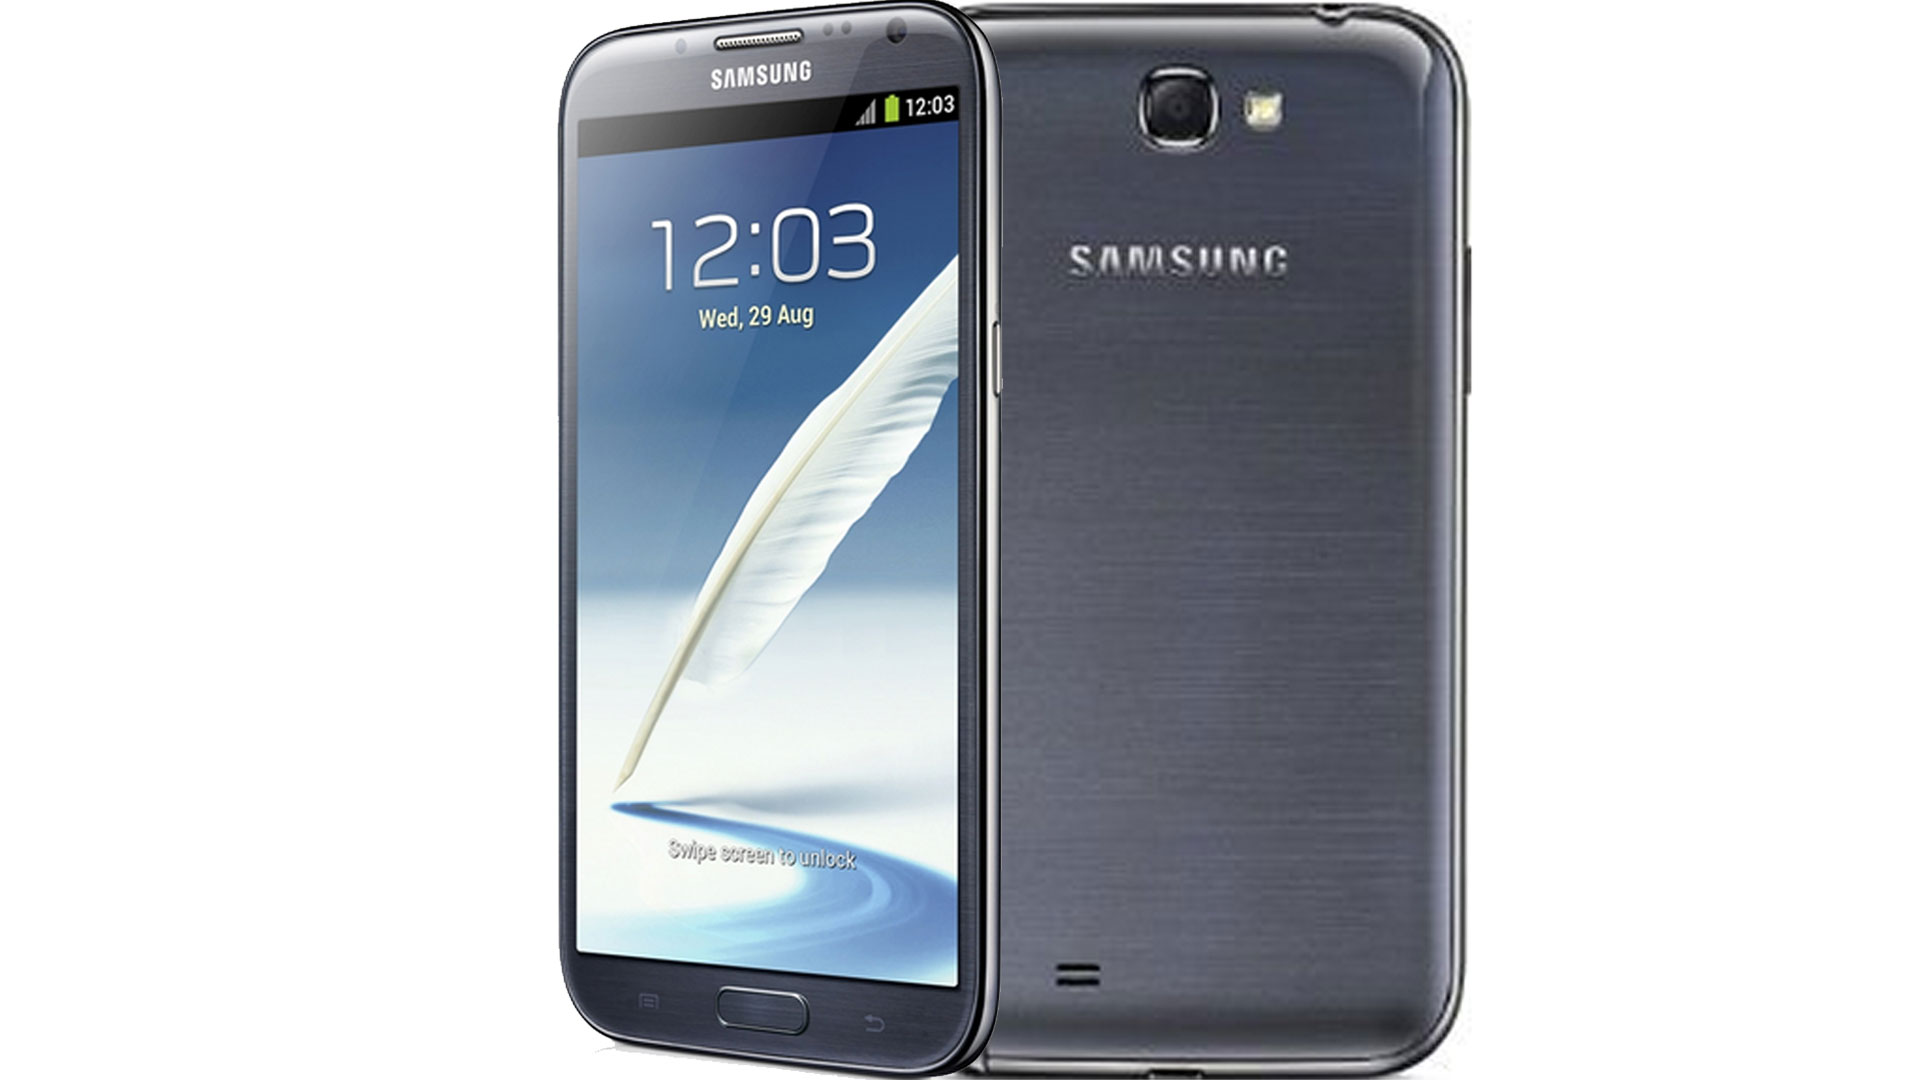 Samsung Galaxy Note 2 Verizon 4G LTE 16GB Android WiFi Smartphone in BOX! Refurbished · Samsung Galaxy Note II · 16 GB · Verizon. out of 5 stars. product ratings - Samsung Galaxy Note 2 Verizon 4G LTE 16GB Android WiFi Smartphone in BOX! $ Time left 1d 11h left. 0 .